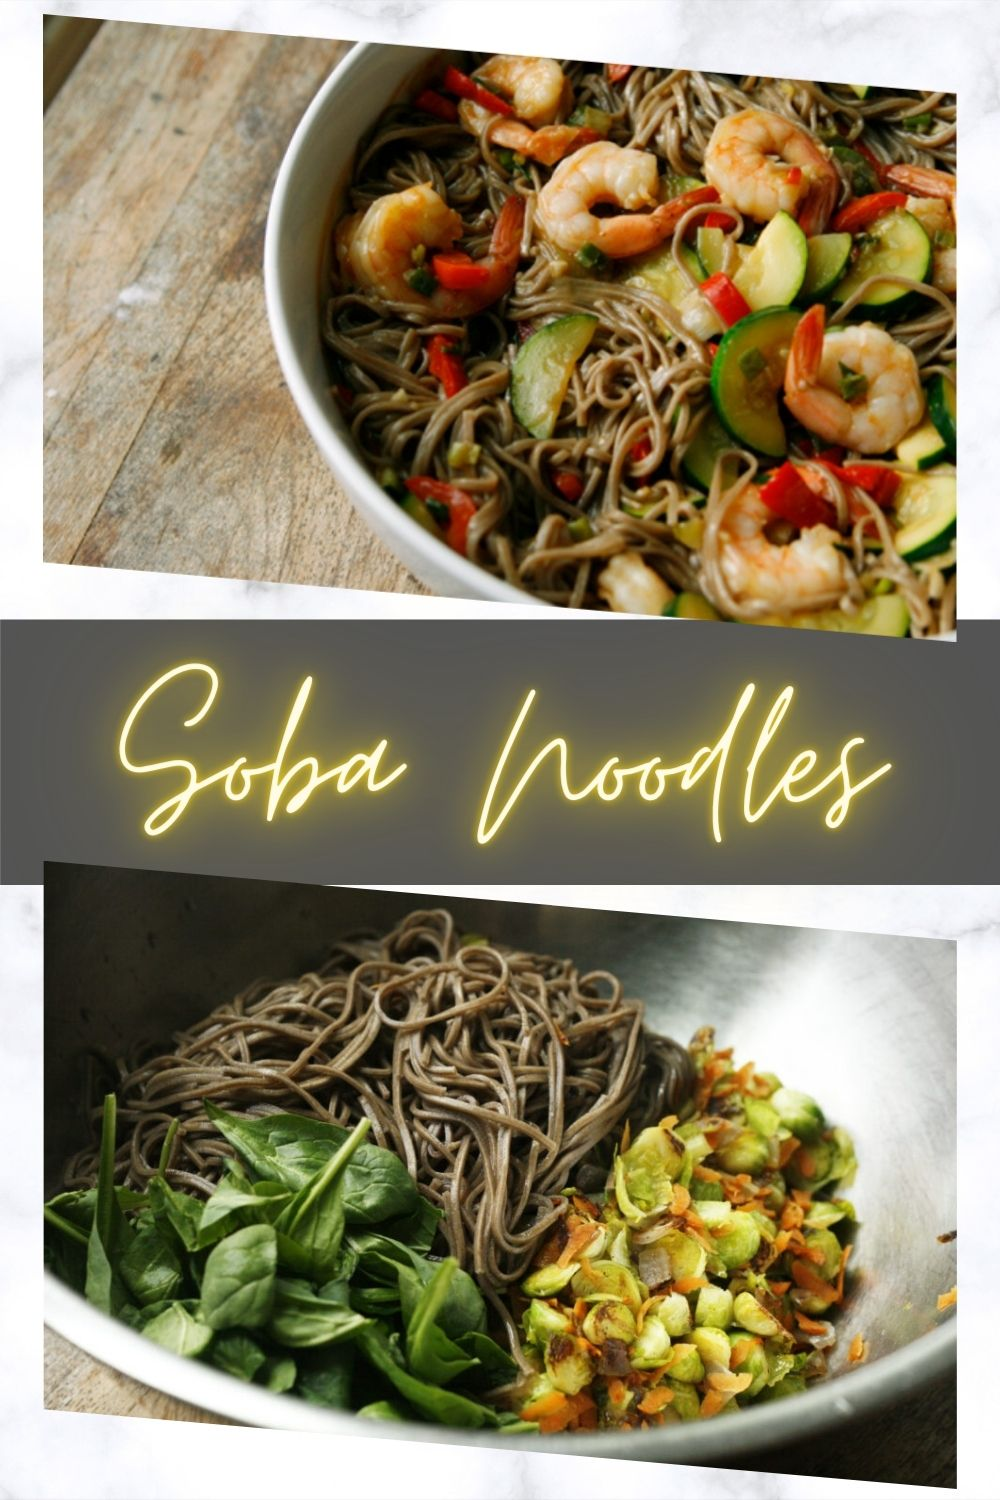 "This image has a light gray marble background and shows the words ""soba noodles"" along with two photos of soba noodle recipes — one in progress and one completed."